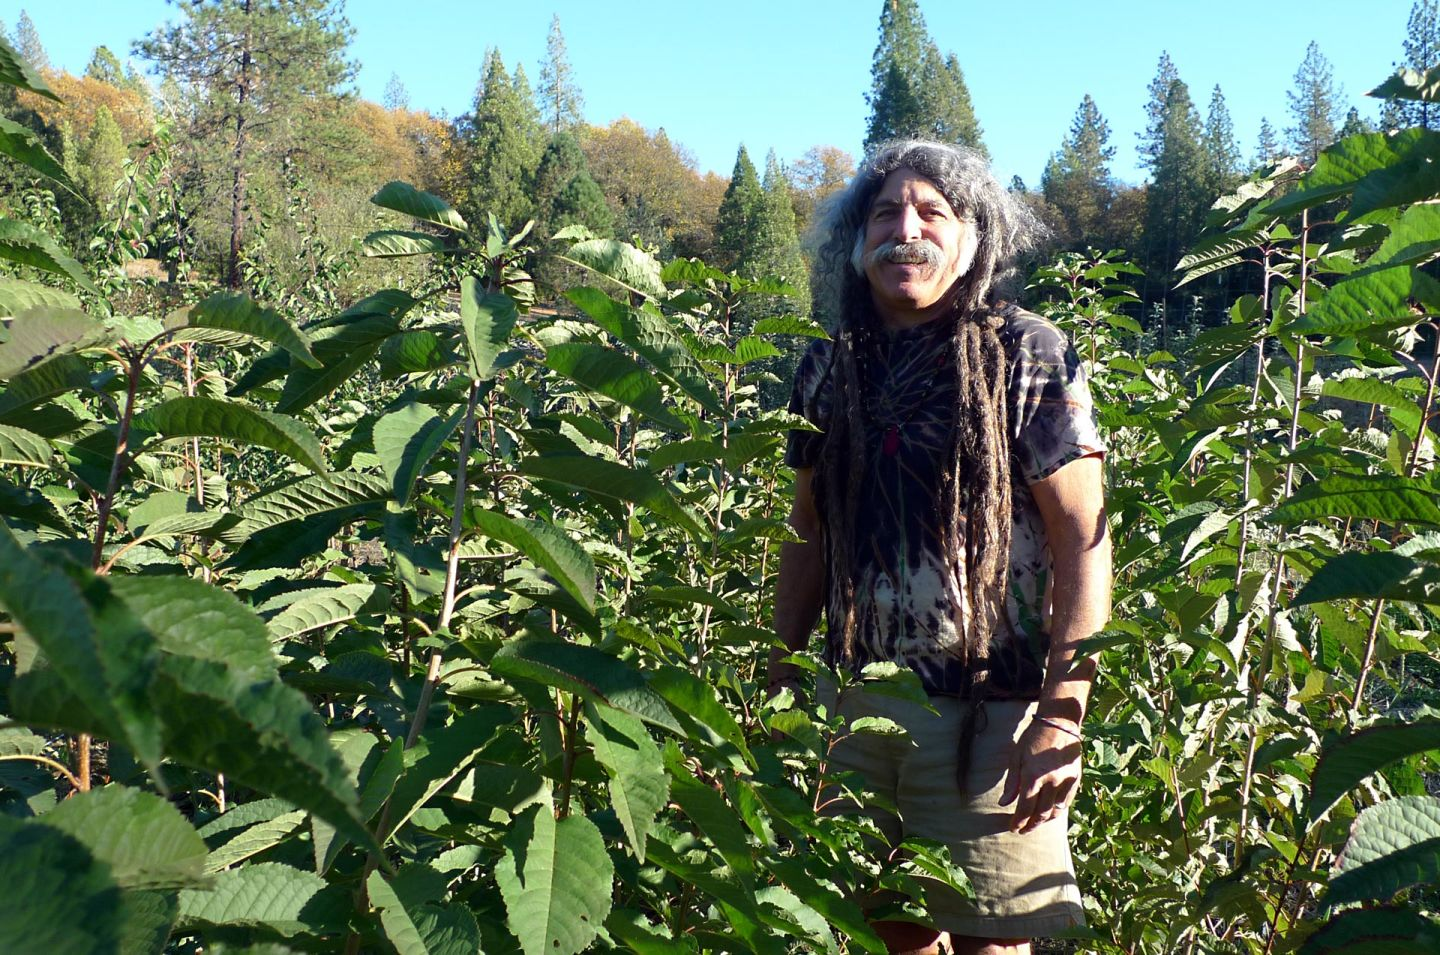 In his Nevada County nursery, Amigo Bob tends the plants he's propagated from heritage trees.